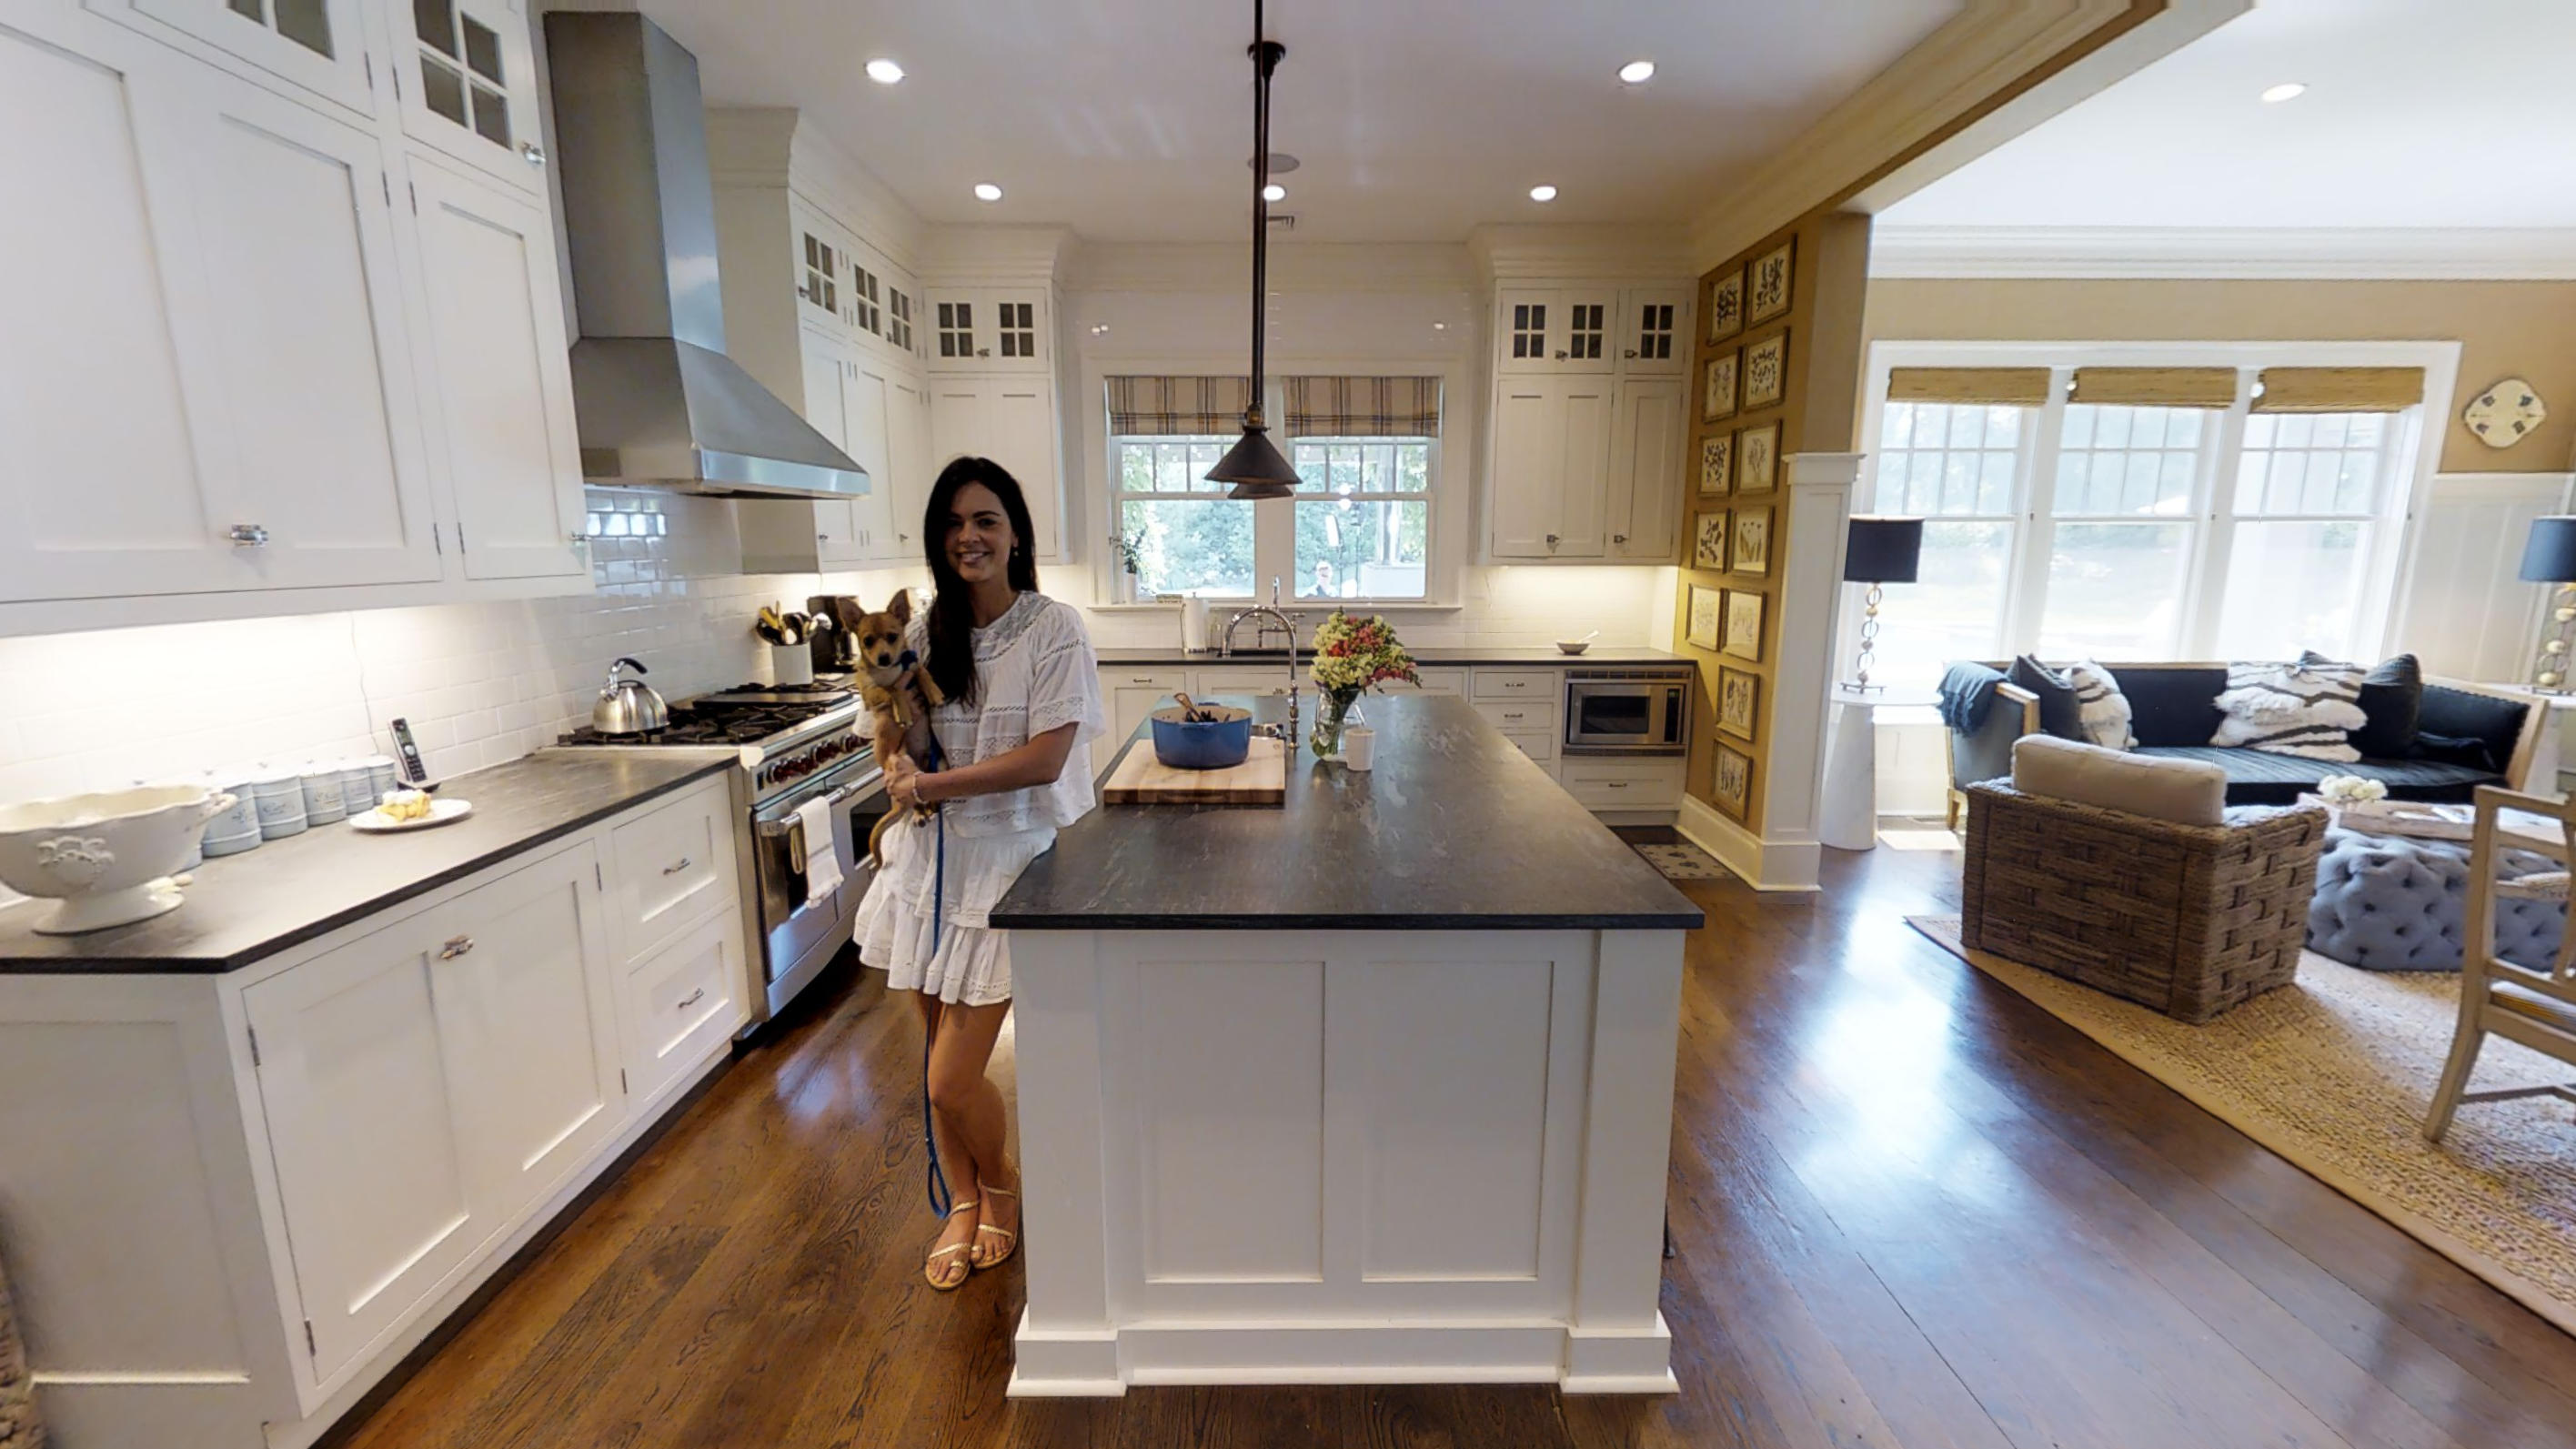 Katie Lee's Home Kitchen